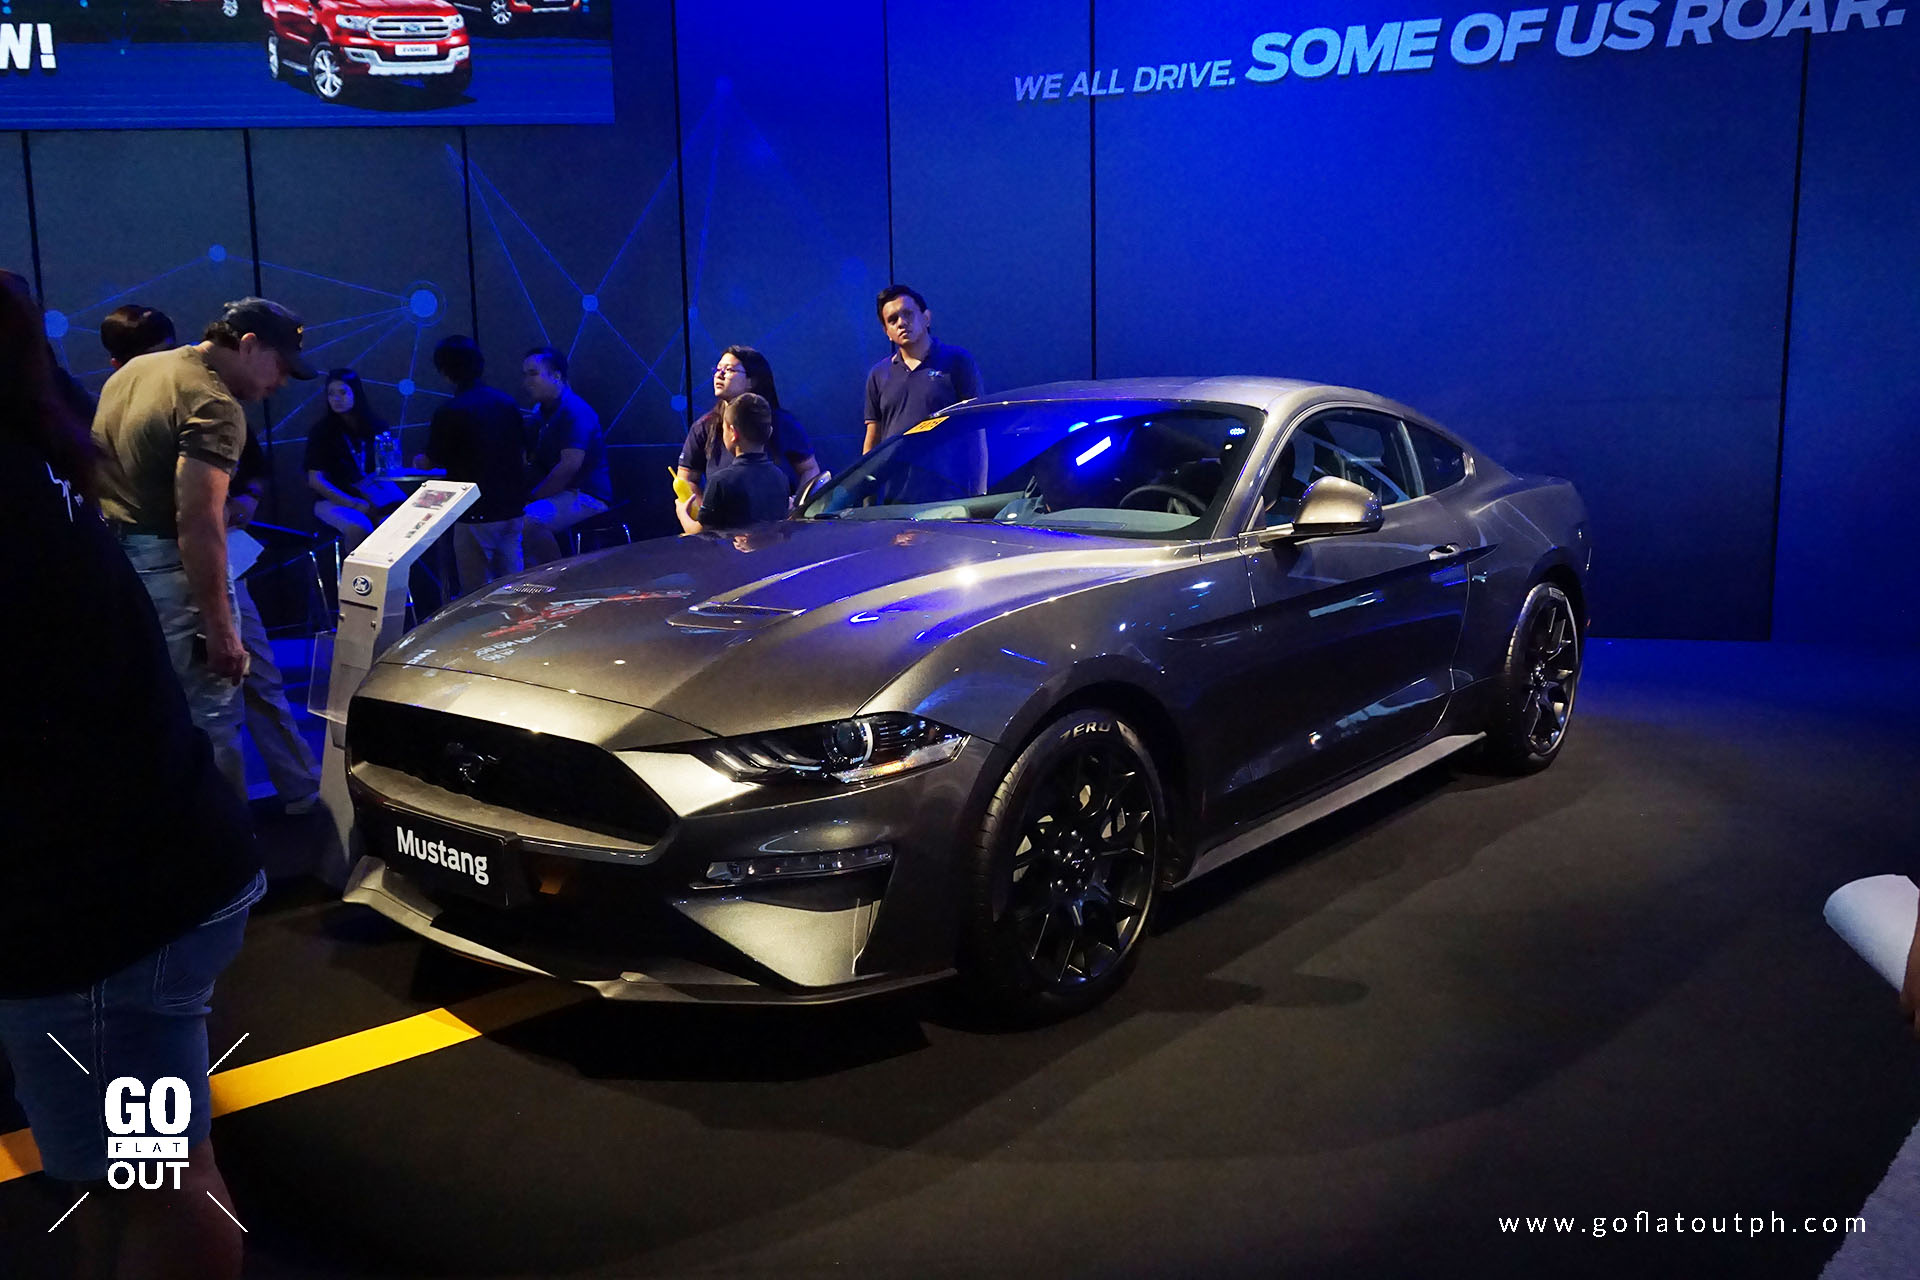 The new mustangs new looks are conveyed through a sharp yet aggressive new design that stays true to its long standing heritage